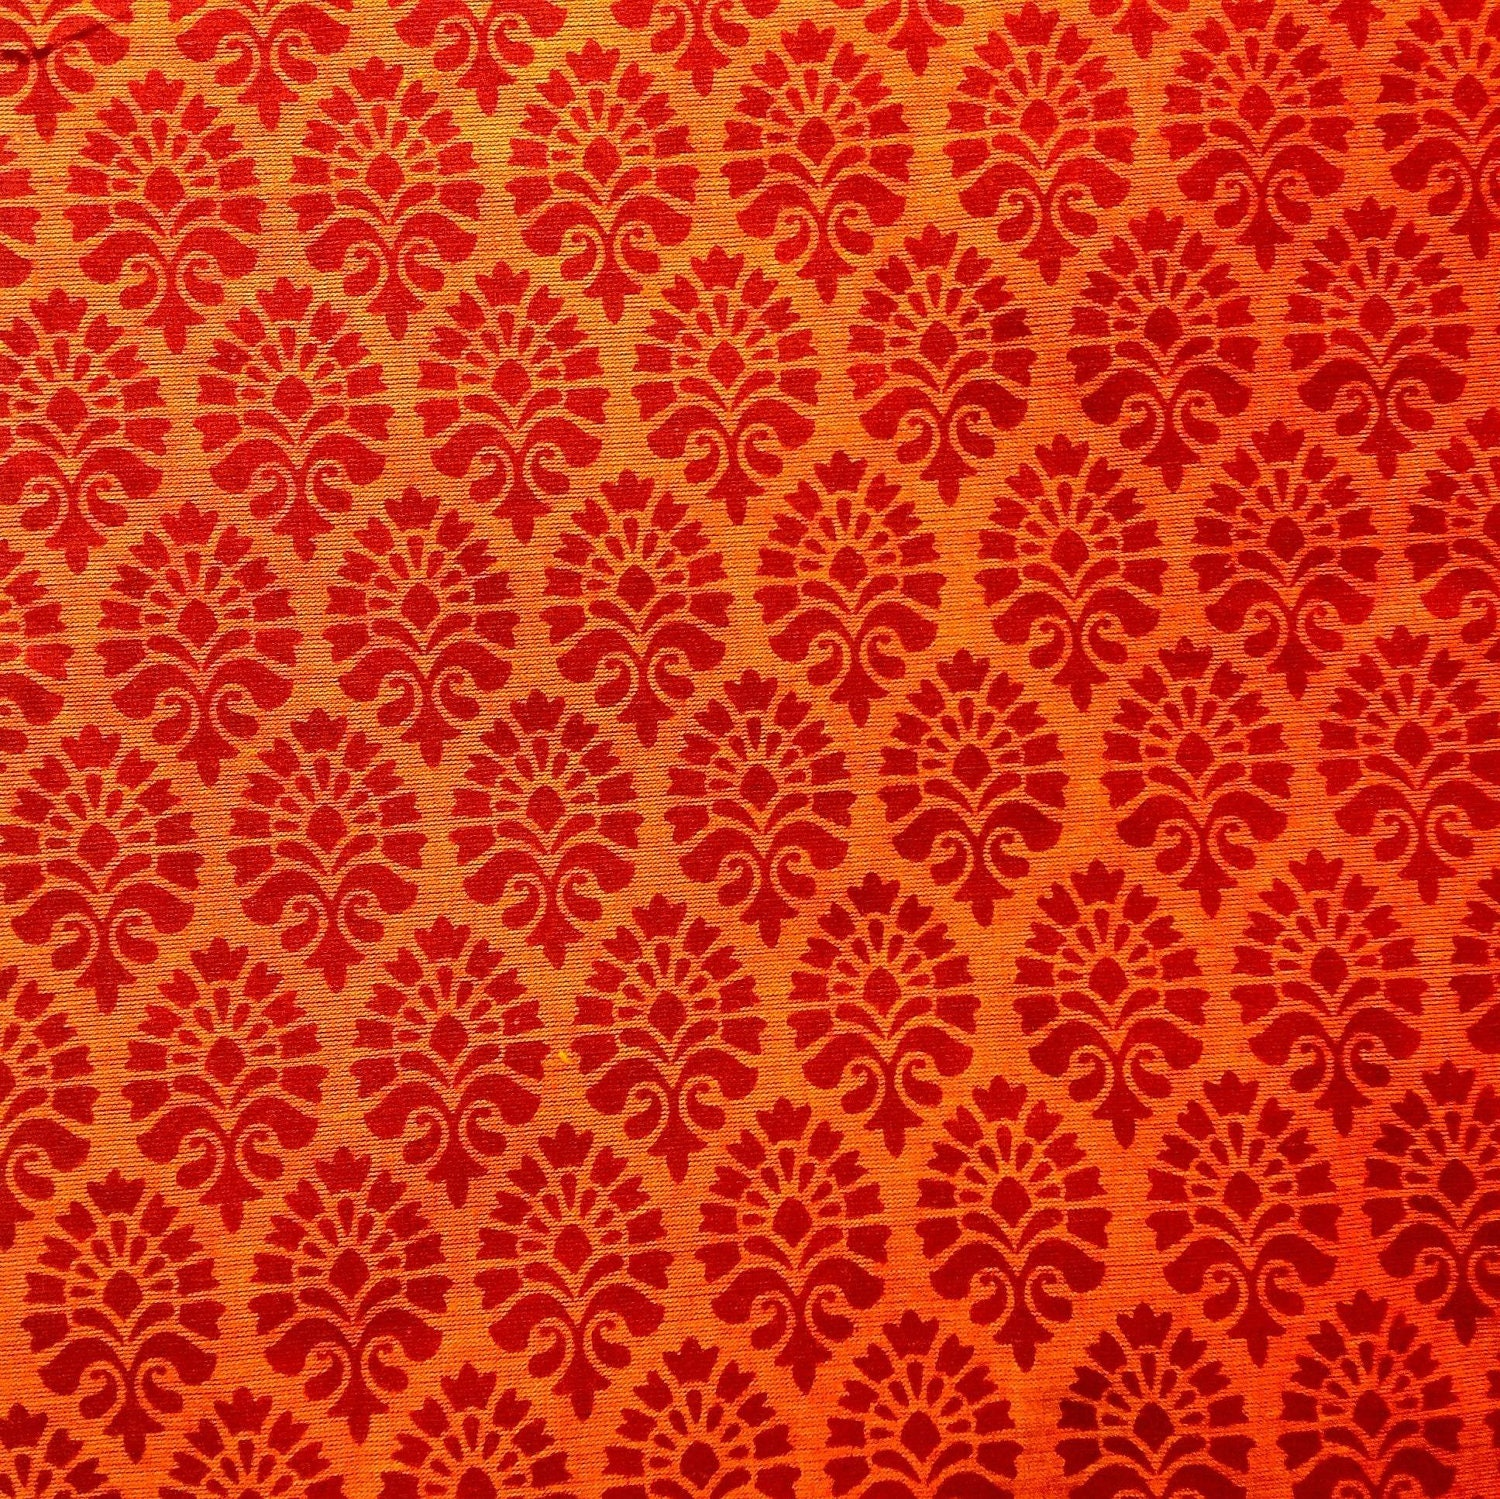 Indian print fabric images galleries for Patterned material fabric